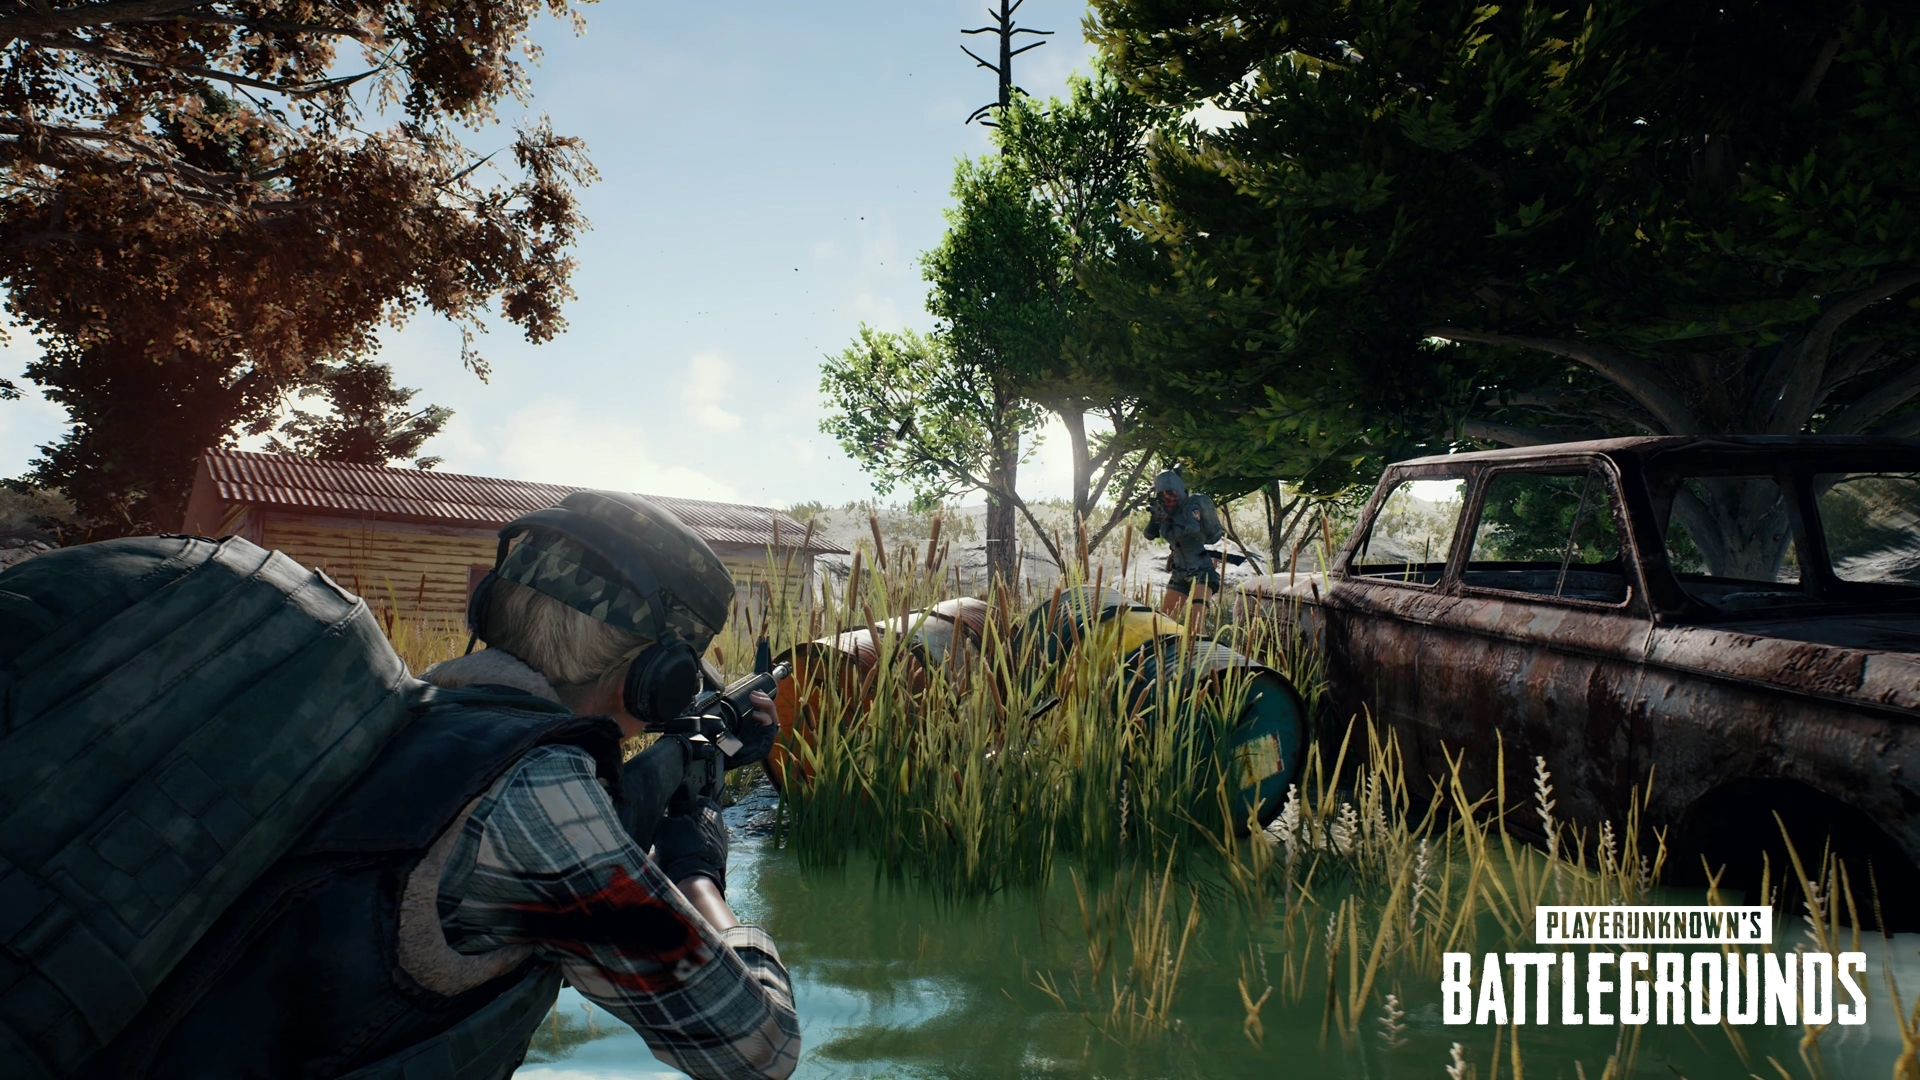 Pubg 4k Ultra Hd Wallpapers For Pc And Mobile: PUBG PC Patch 11 To Offer Custom Game Real-time Spectating